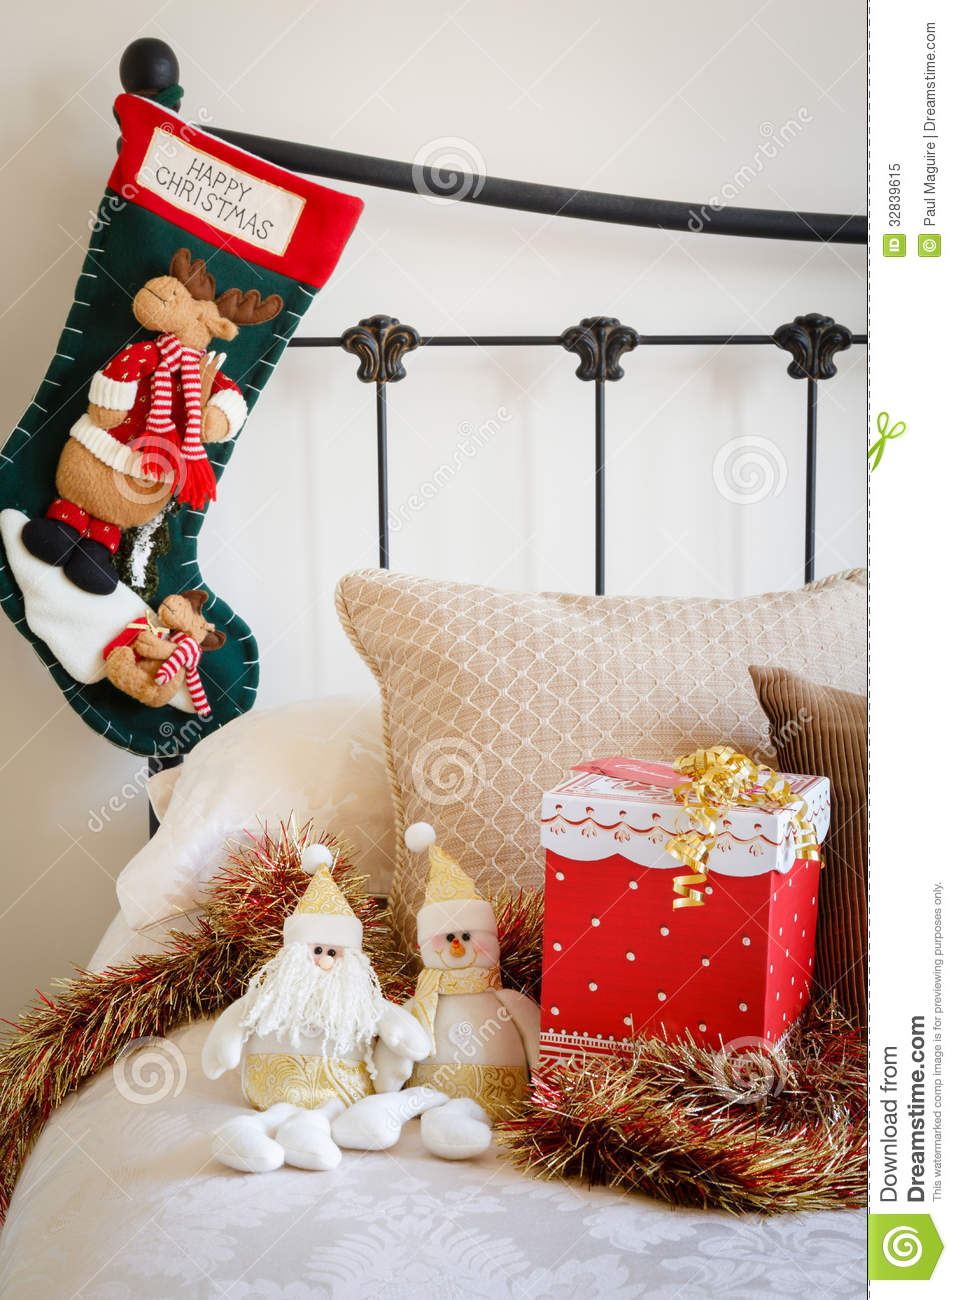 Christmas Stocking On Bed Royalty Free Stock Photo - Image ...